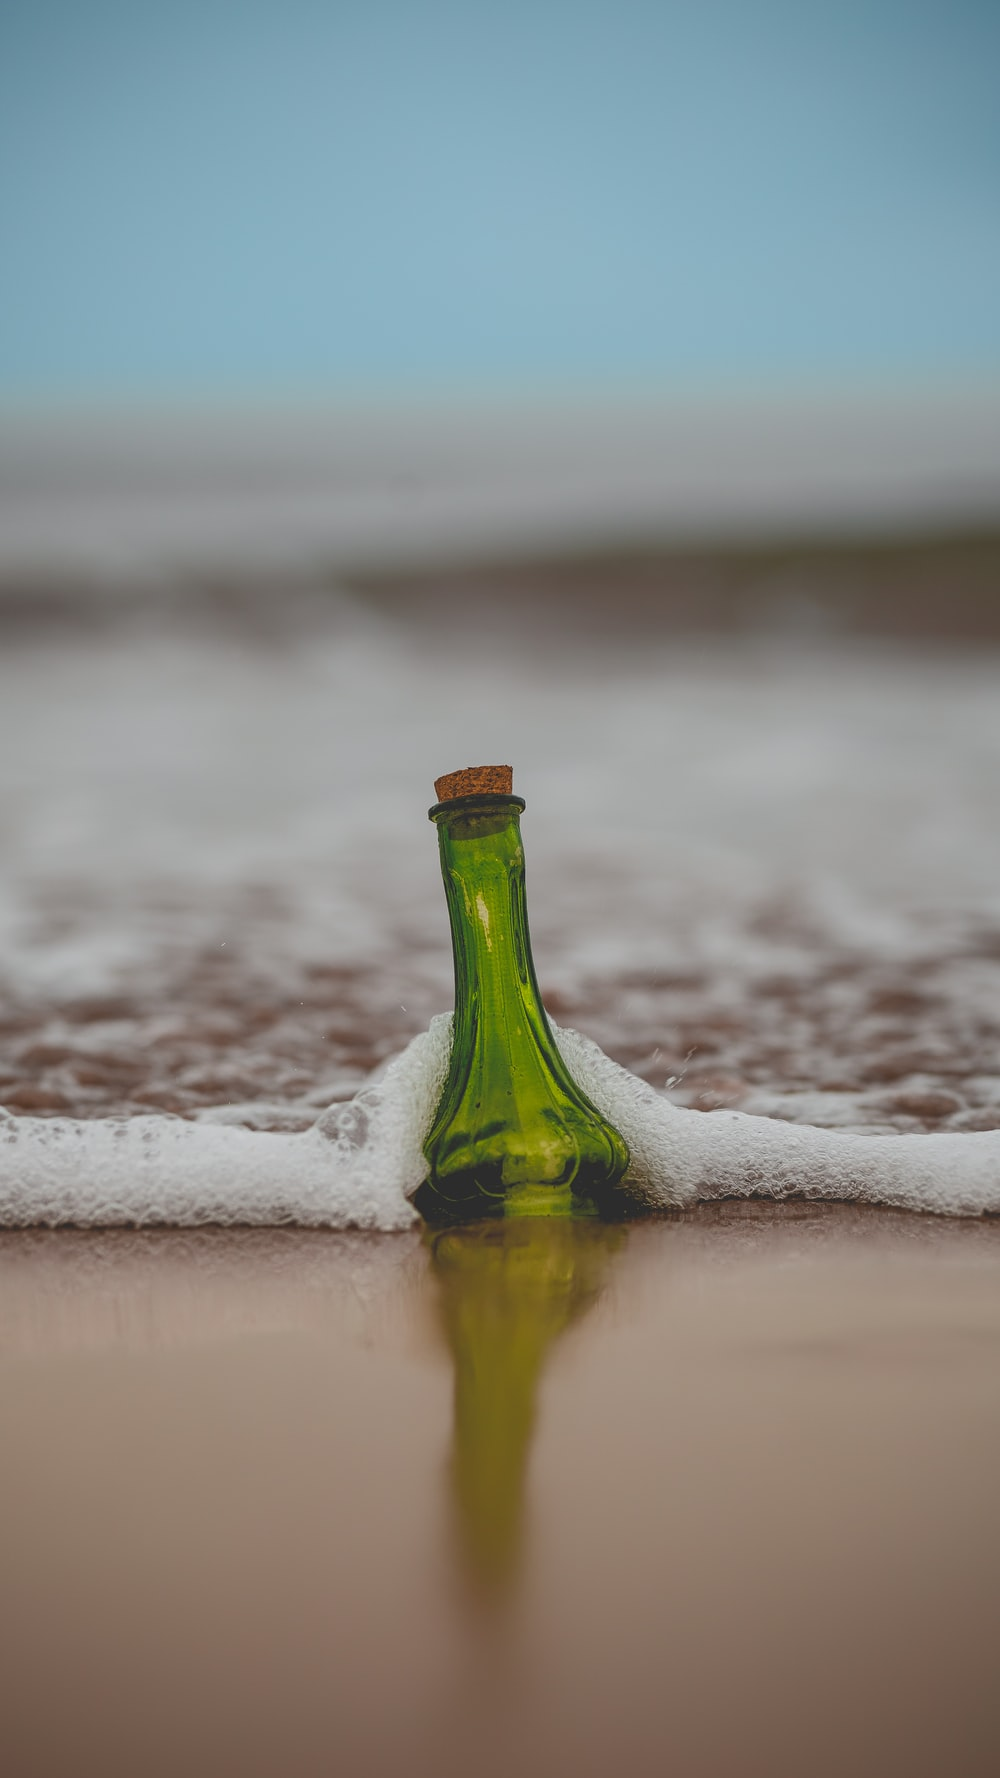 green glass bottle with cork lid on shore